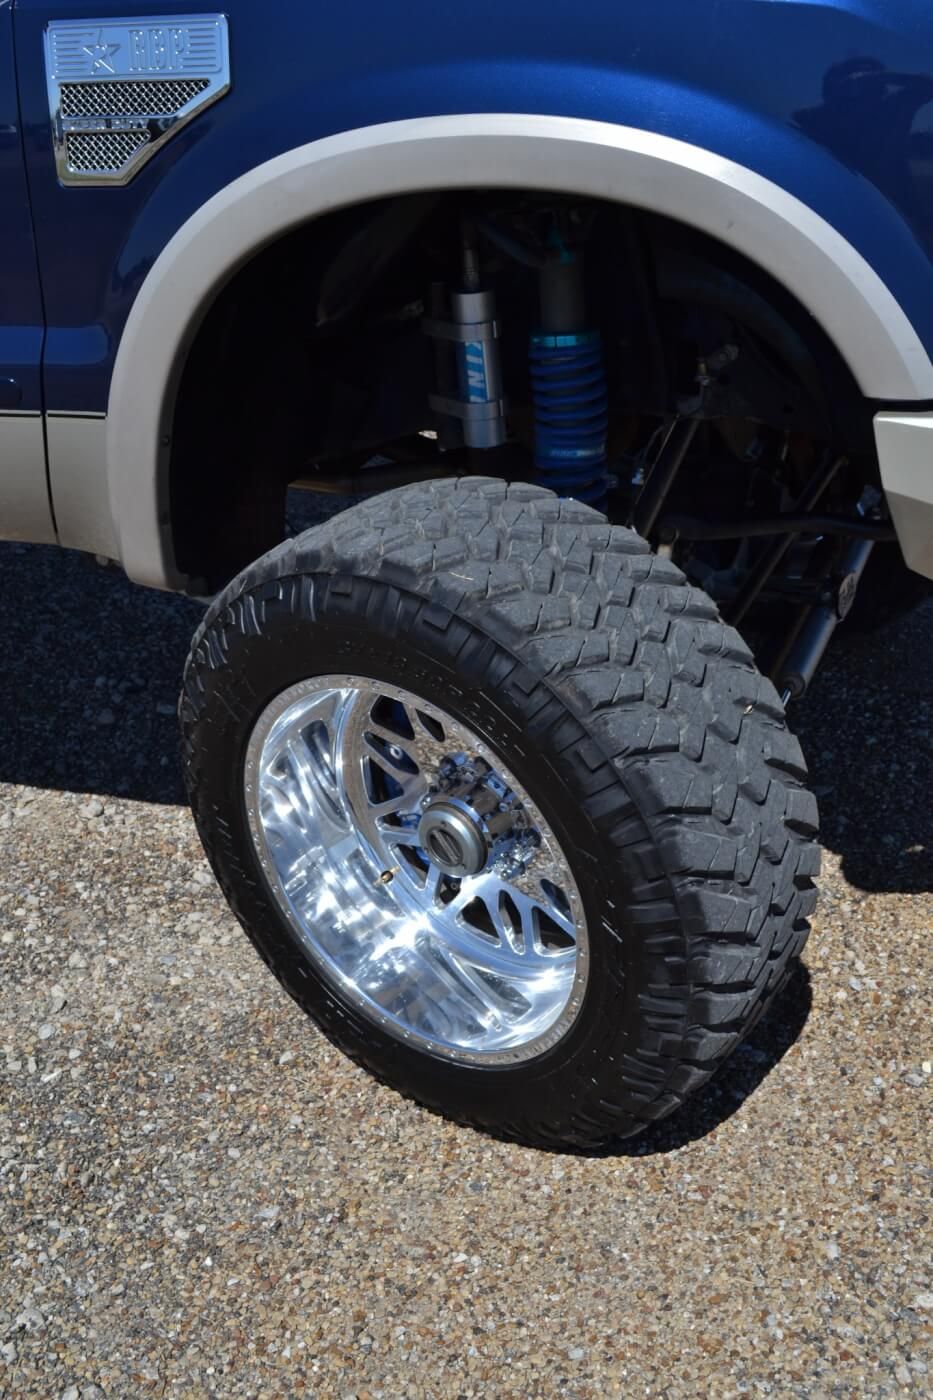 The front suspension has King coilover shocks as well, just like the rear. Slightly less travel is available (10 inches) although it's still plenty for most terrains and is much more than F-250s came with from the factory.